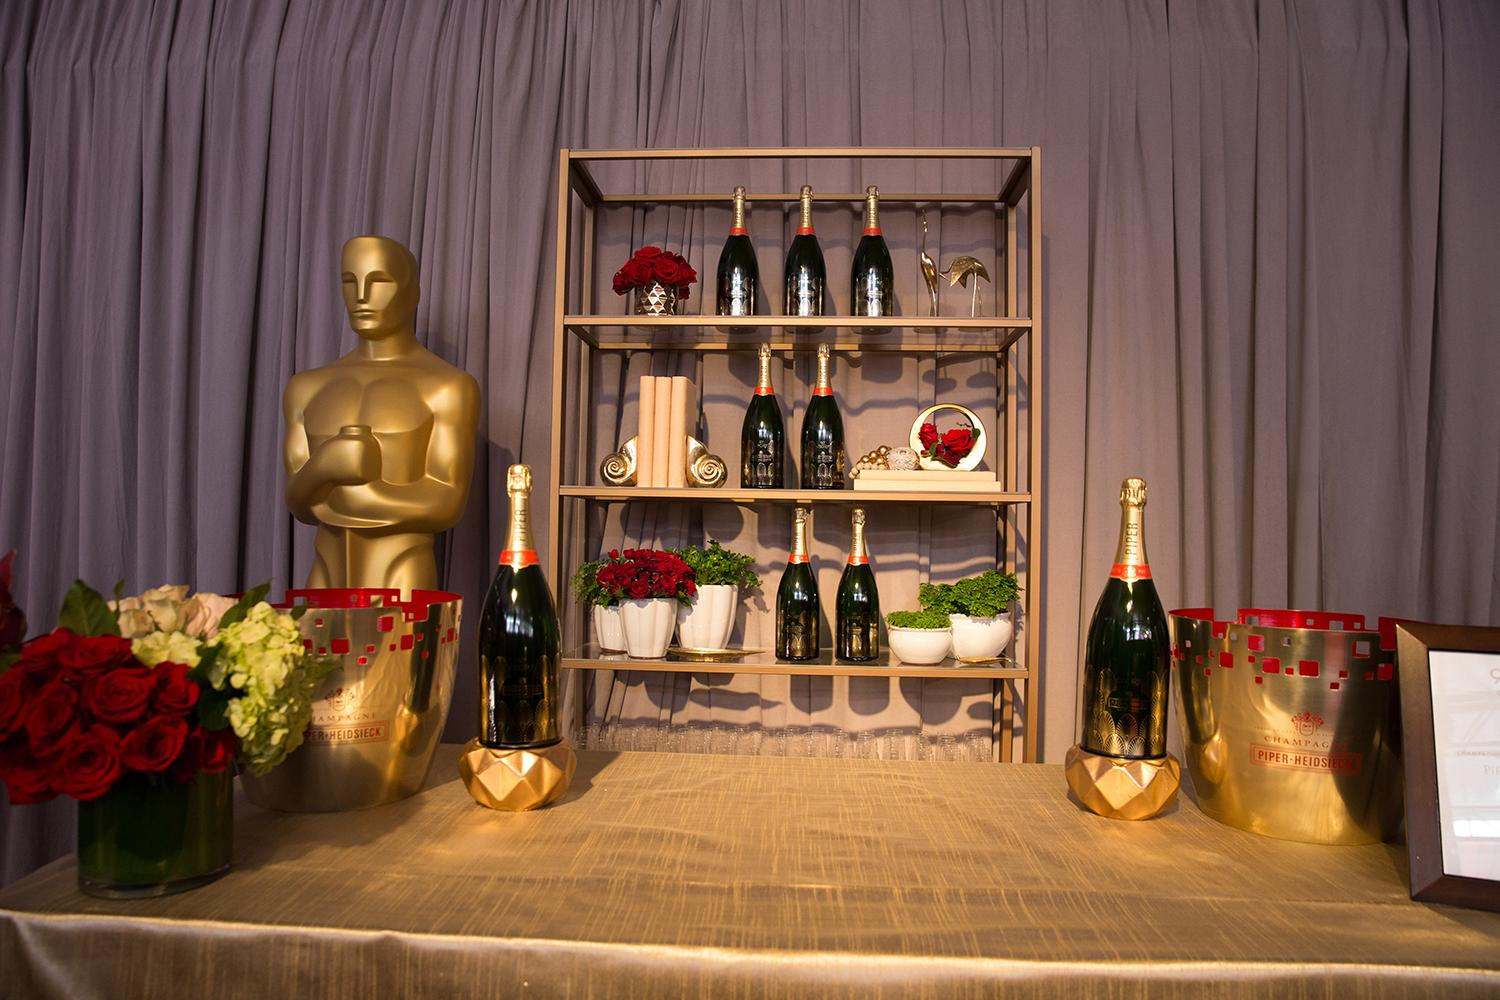 The Academy's Governors Ball will be held in the Ray Dolby Ballroom on the top level of the Hollywood & Highland Center®. The 90th Oscars® for outstanding film achievements of 2017 will be presented on Sunday, March 4, 2018 at the Dolby Theatre® in Hollywood, CA and televised live by the ABC Television Network.